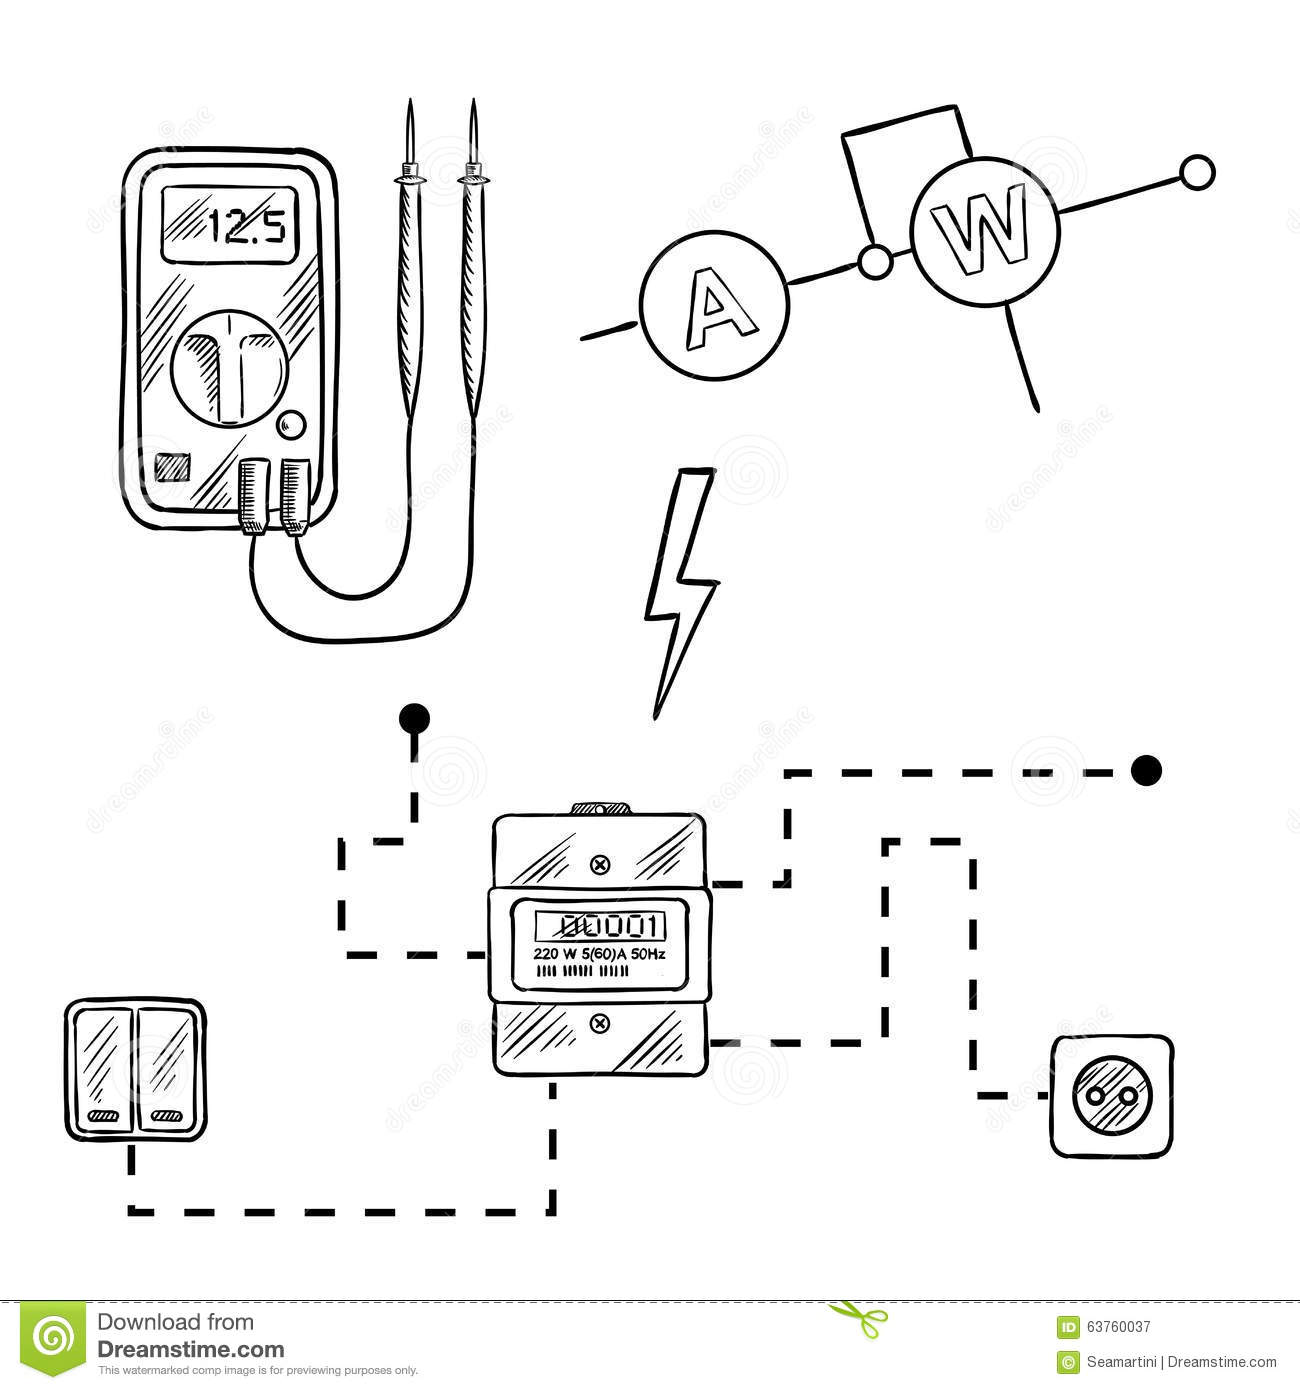 hight resolution of digital voltmeter electricity meter with socket and switches electrical circuit diagram sketch icons for electrical supplies and diagram design